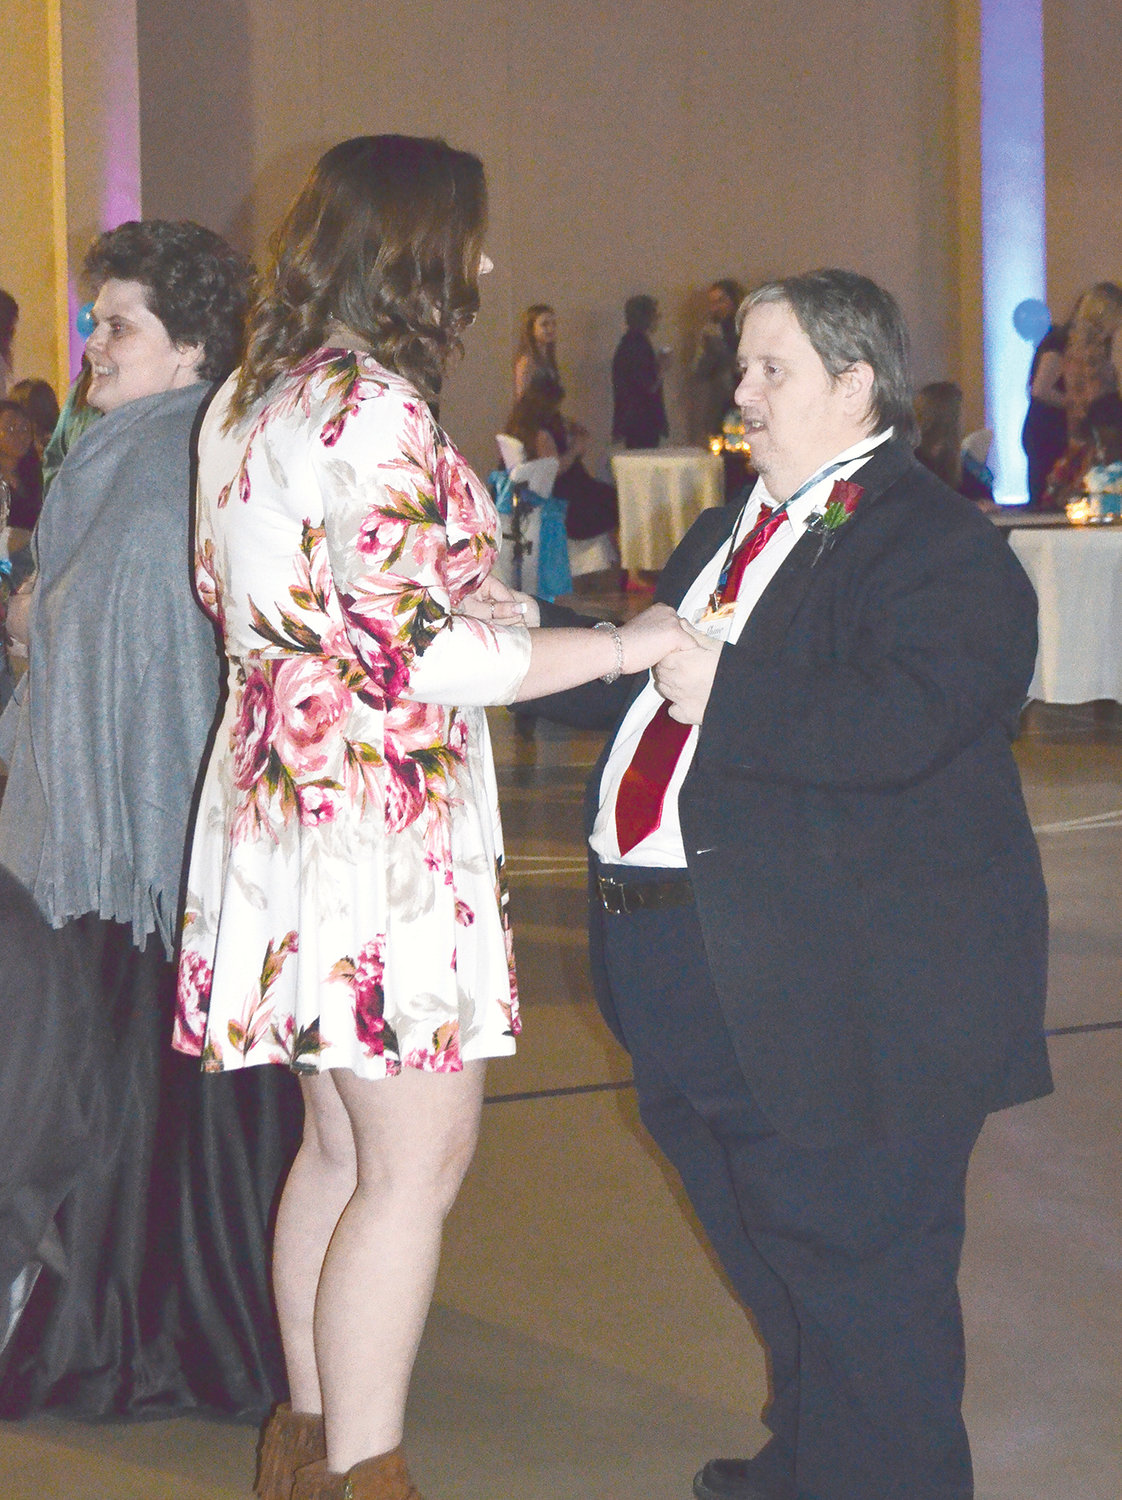 A crowd of hundreds attended the Night to Shine prom Friday night at Bethel Baptist Church in Dora. The memorable event is sponsored by the Tim Tebow Foundation. Over 650 churches around the world hosted Night to Shine dances on Friday.